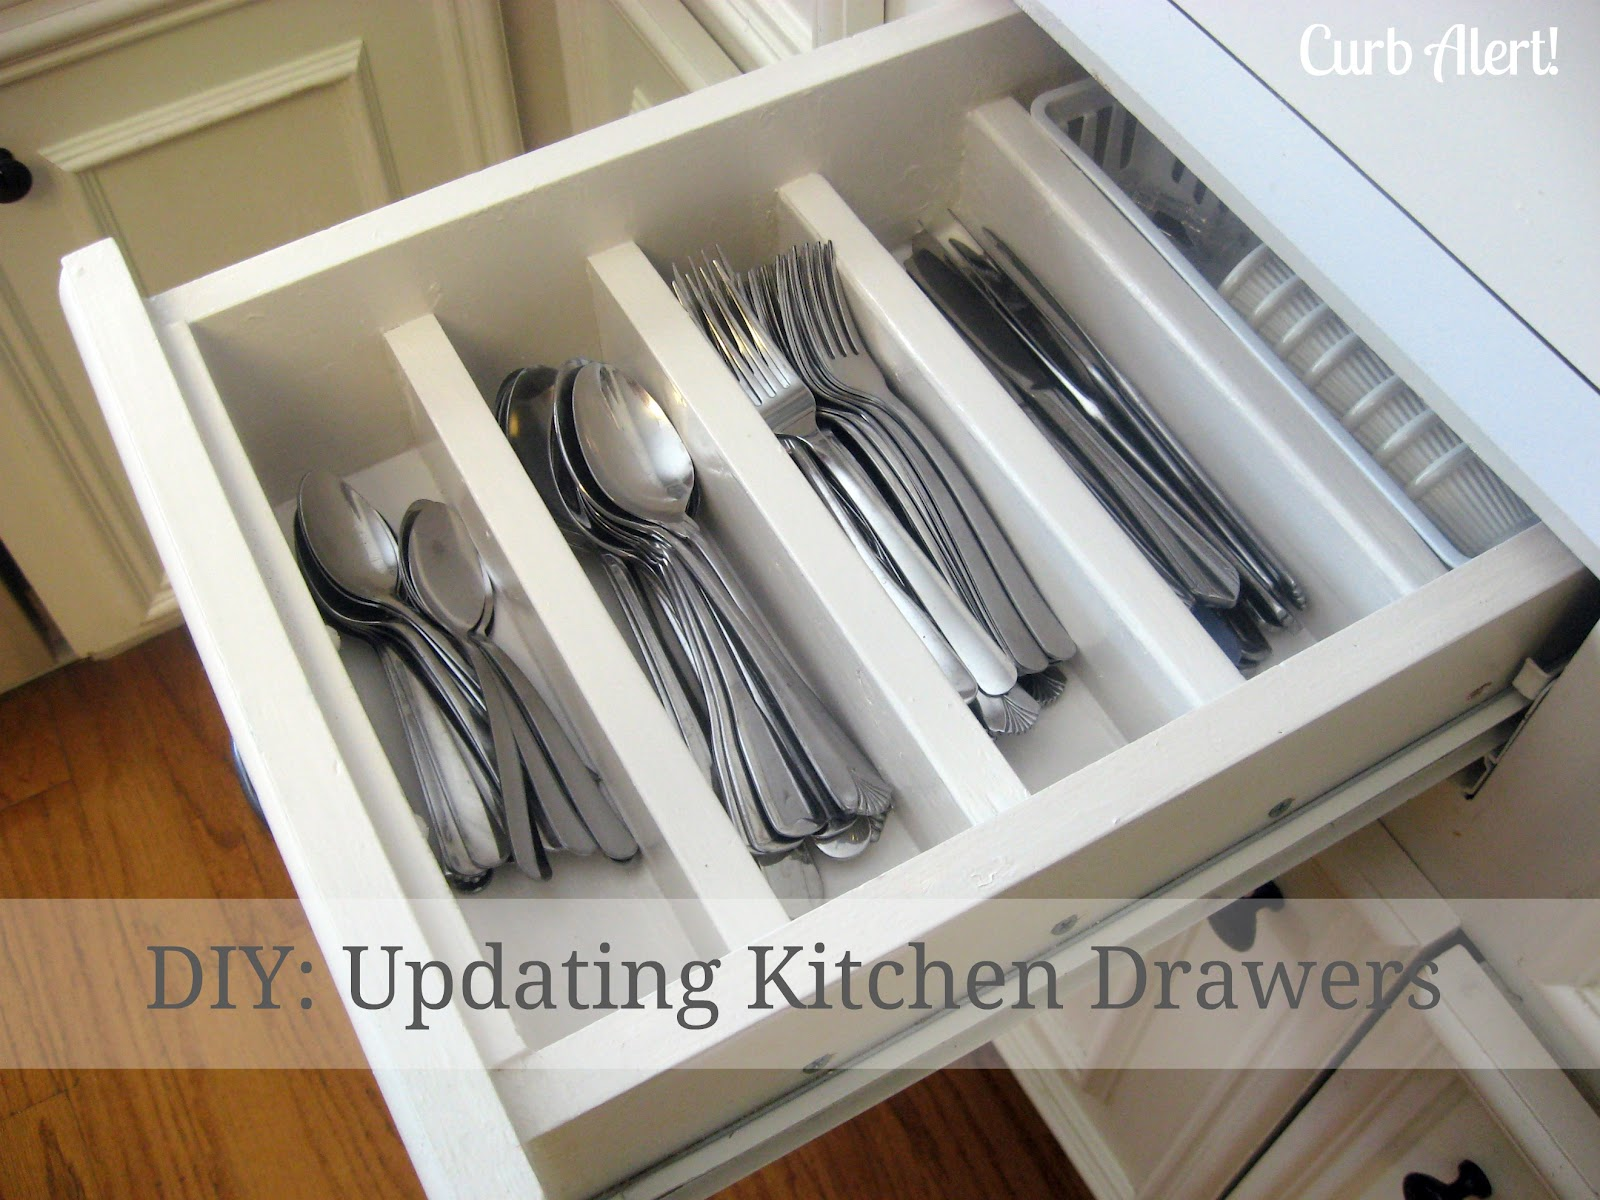 food with organizer expandable flatware organizers bamboo bottom lipper kitchen cork products category drawer